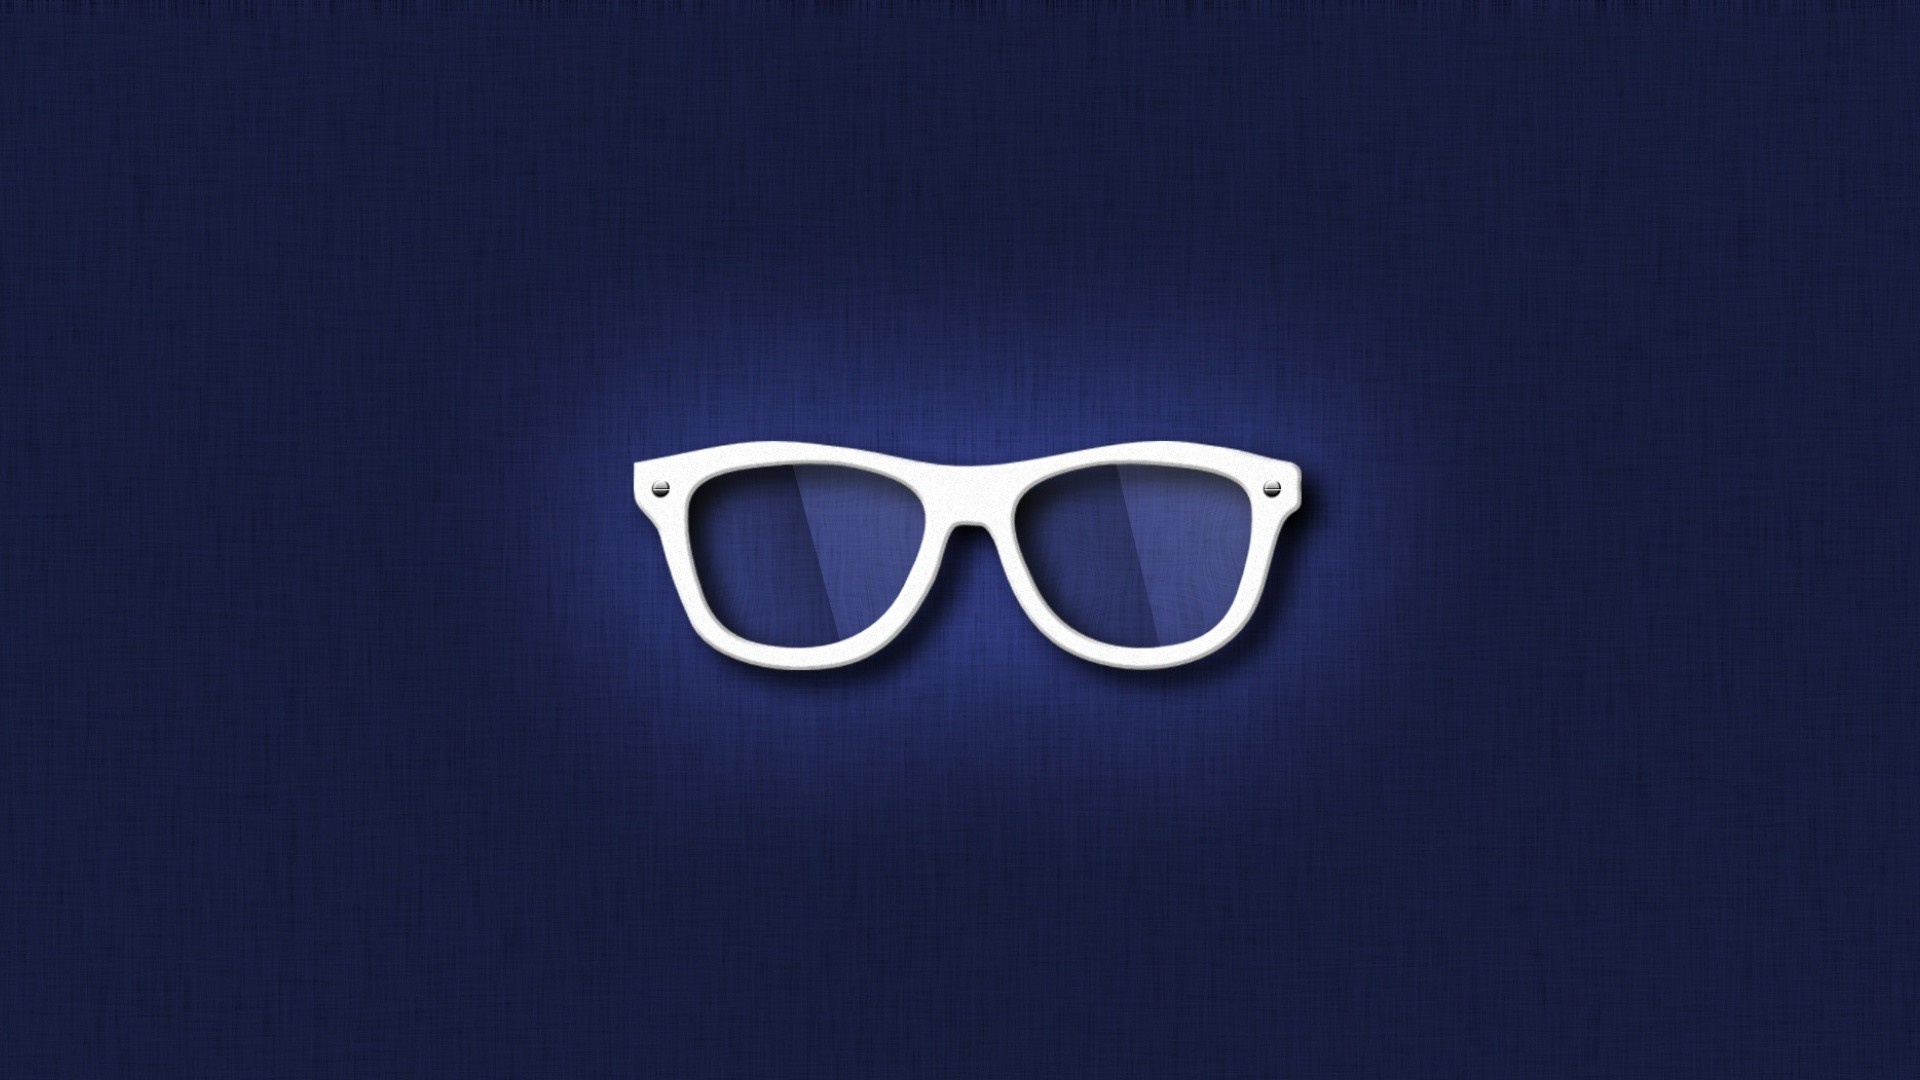 Glasses Wallpaper